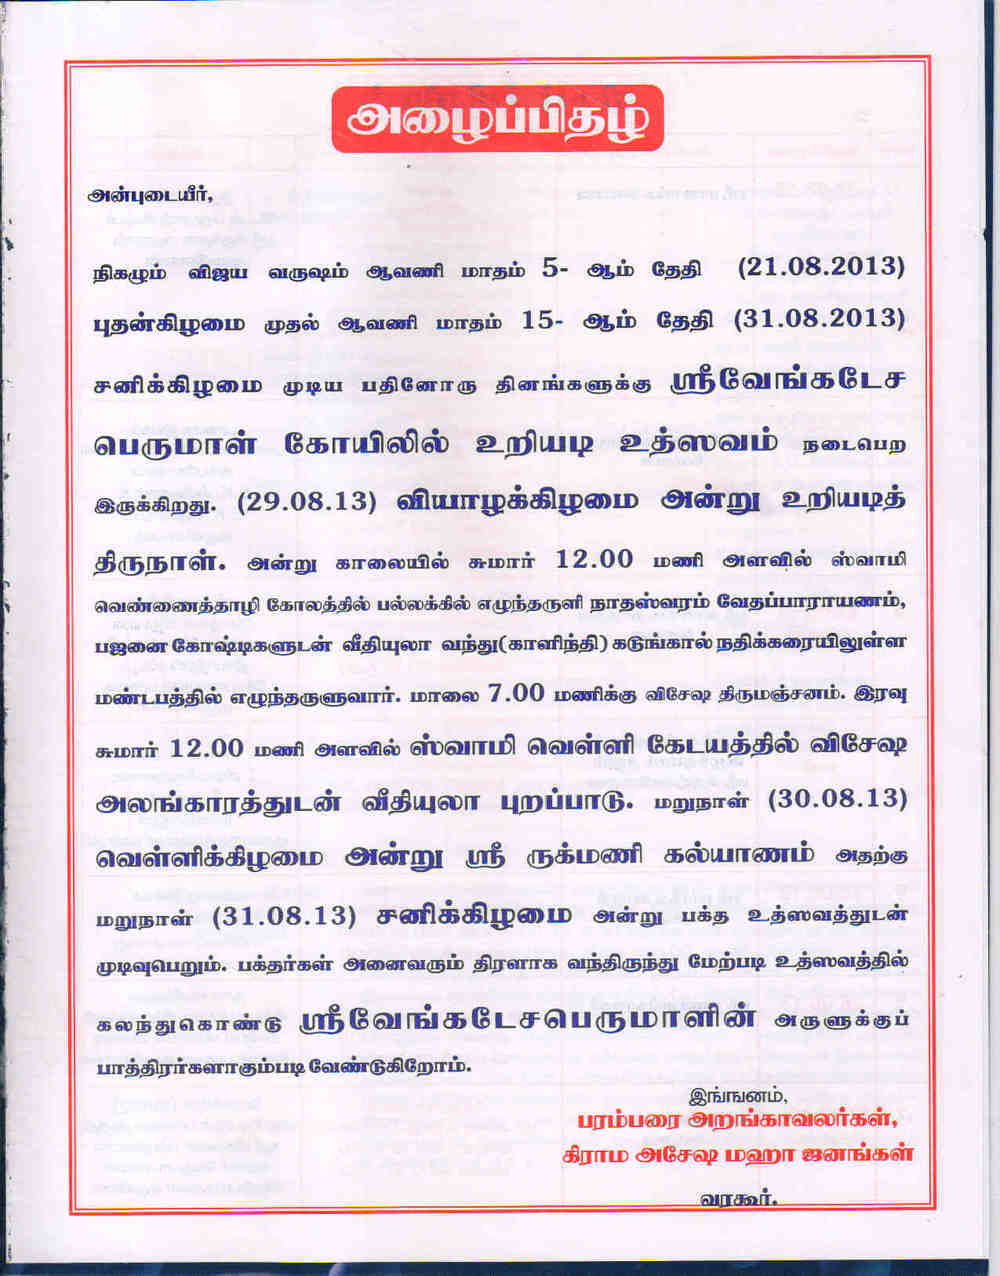 Uriyadi 2013. invitation3.jpg